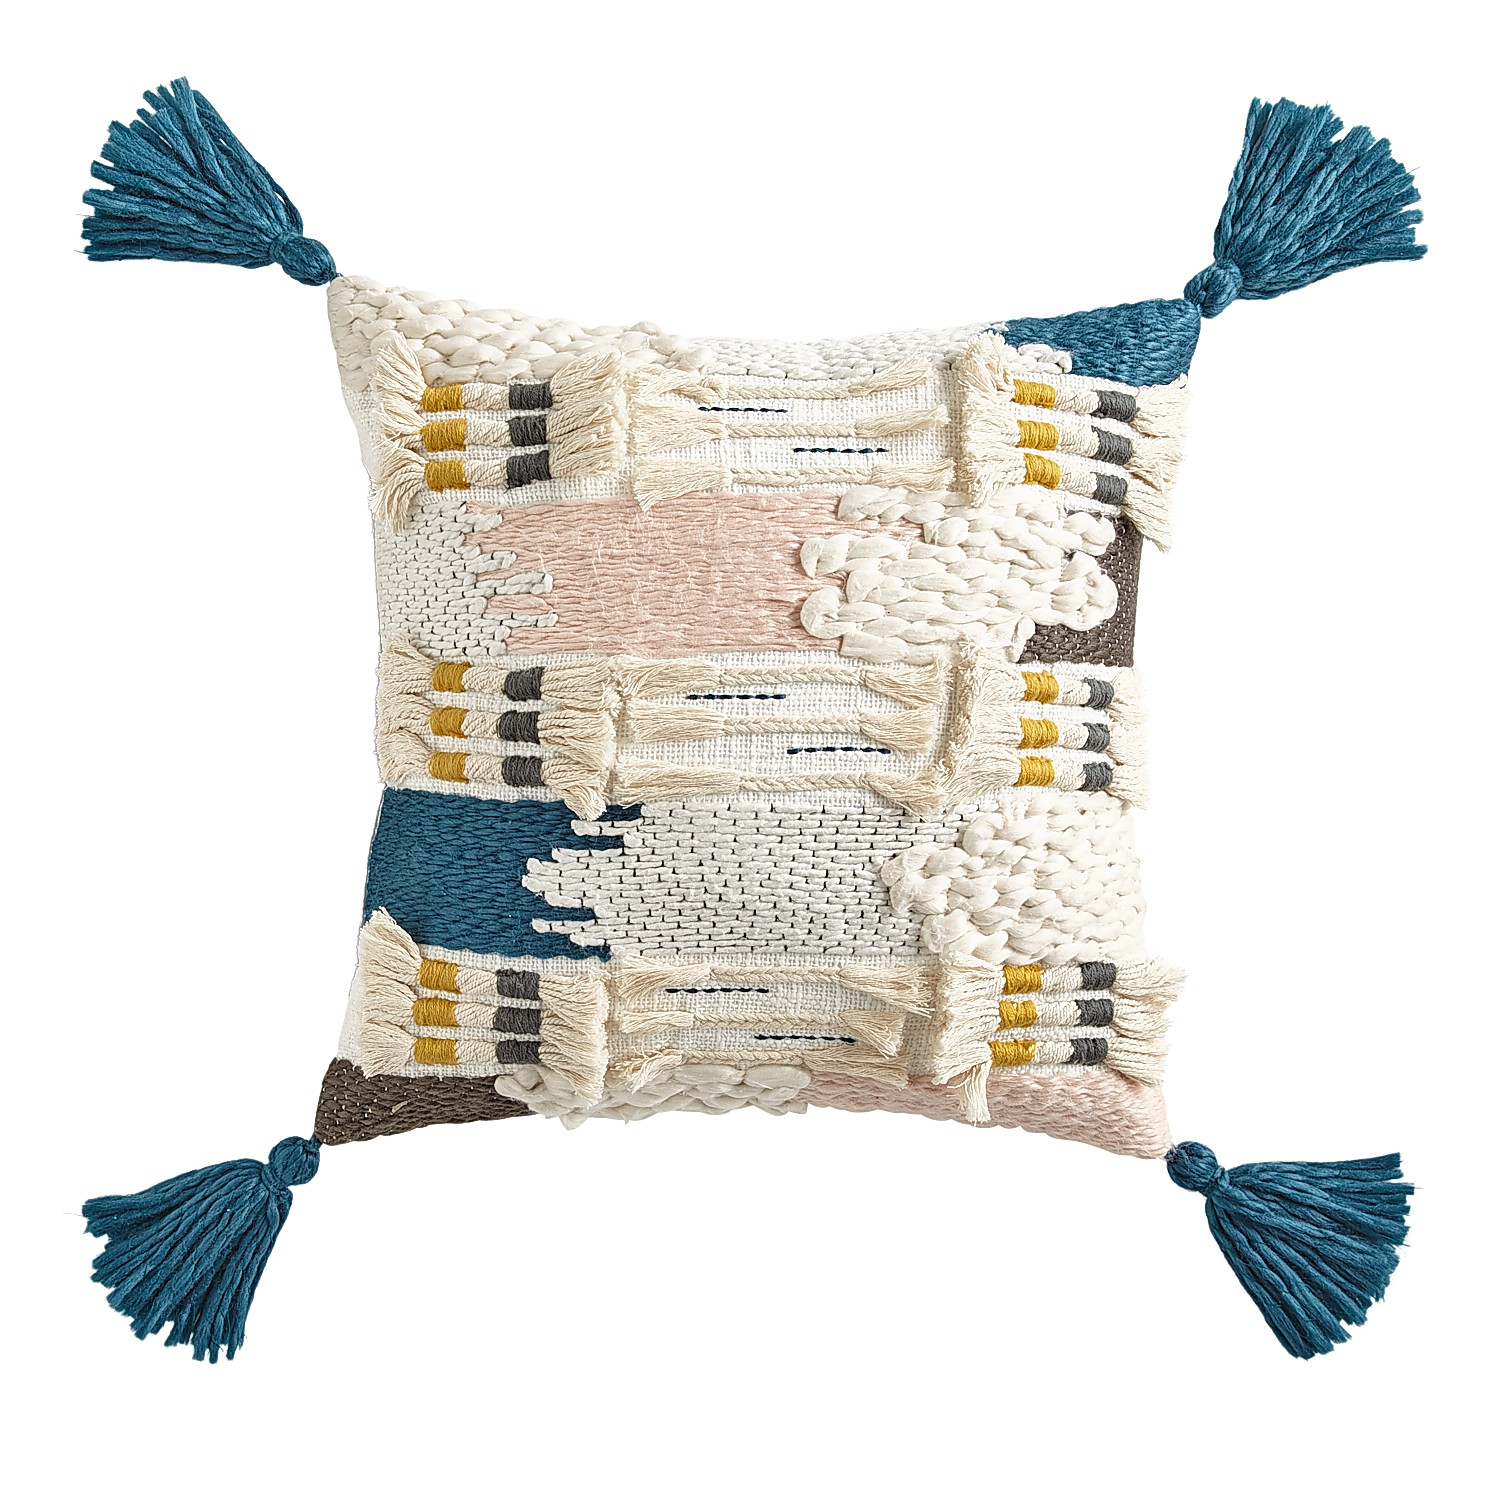 Abstract Tufted Pillow with Tassels